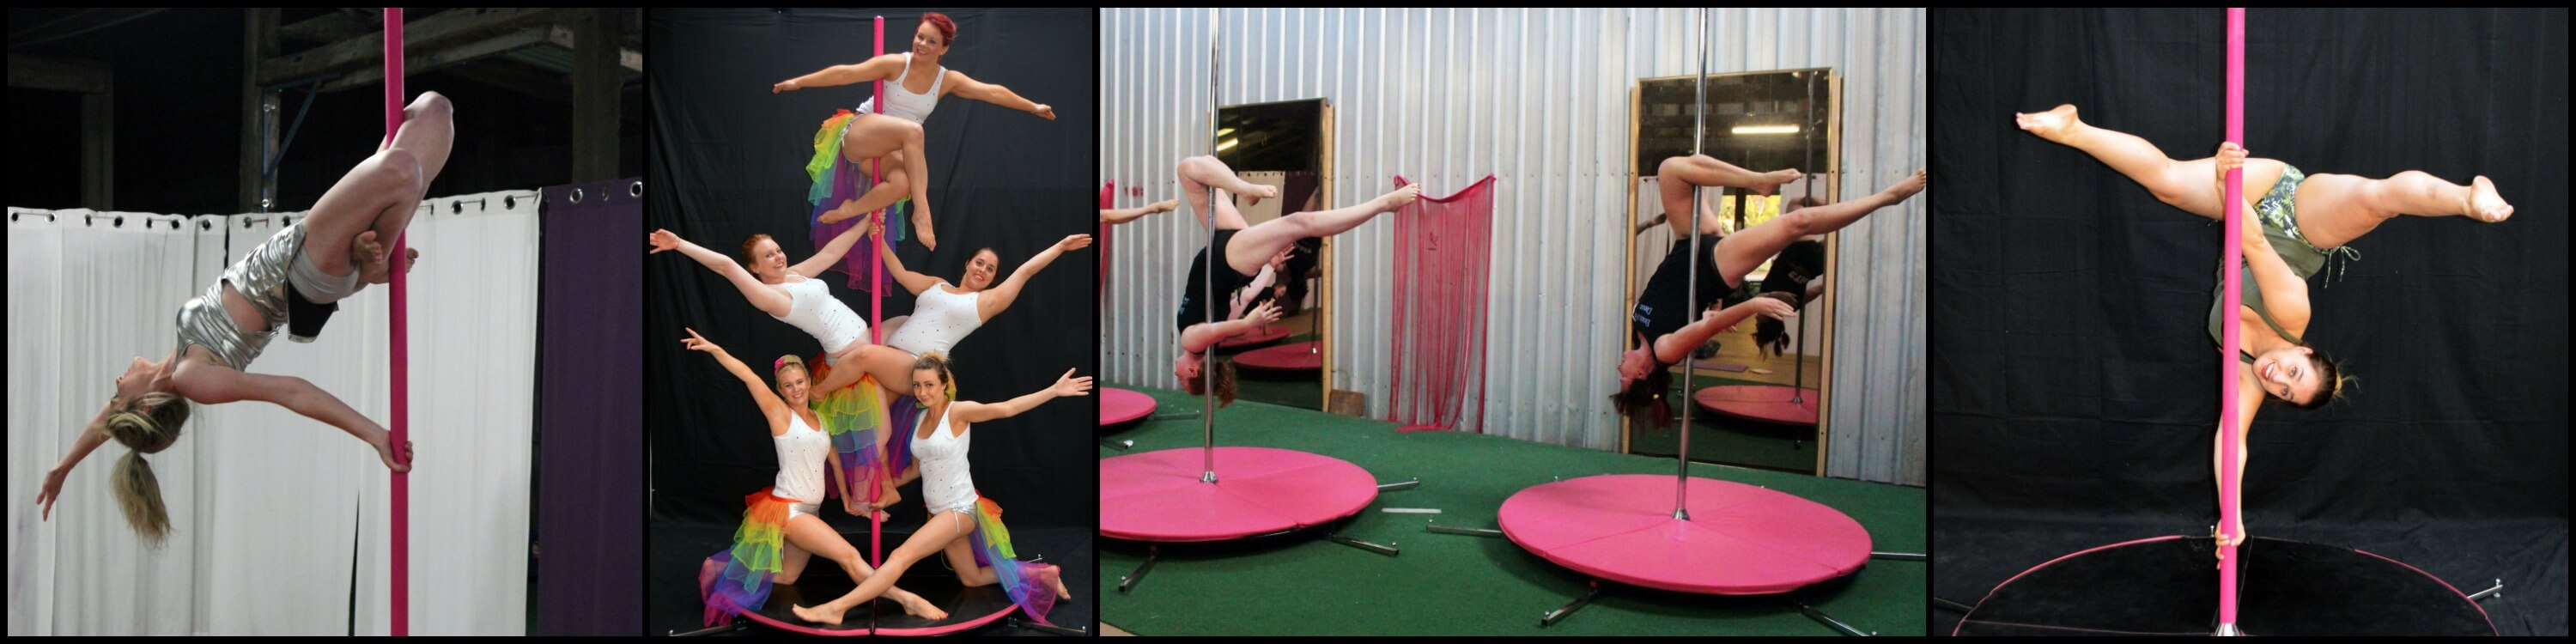 Reach New Heights with Pole Fitness